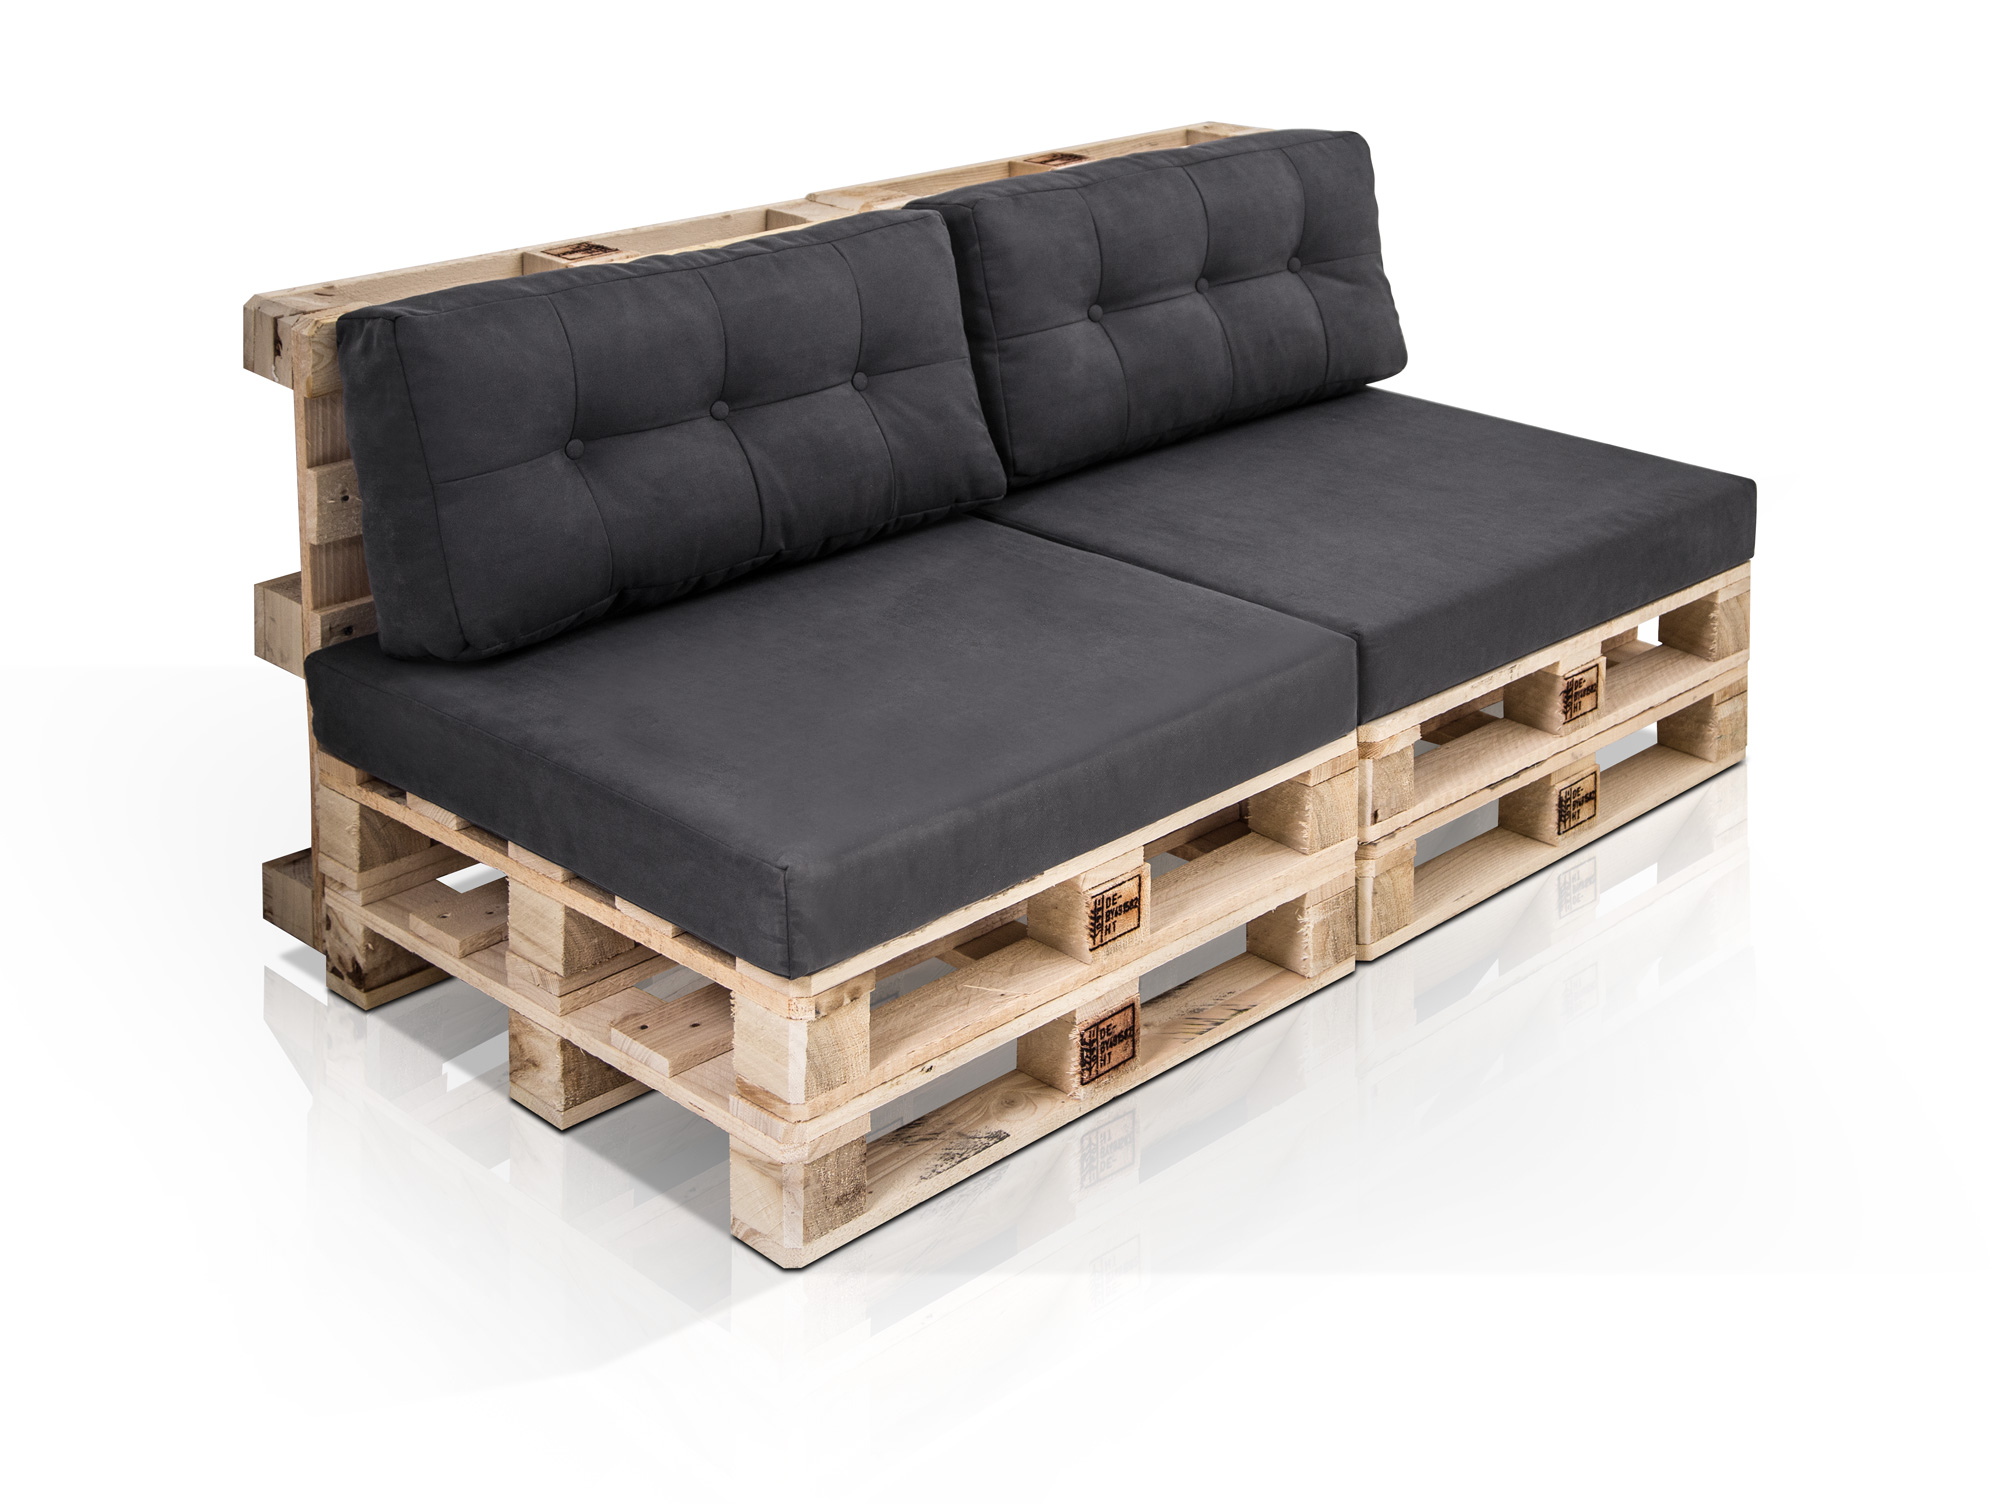 den couches paletti 2 sitzer sofa aus paletten natur ohne. Black Bedroom Furniture Sets. Home Design Ideas